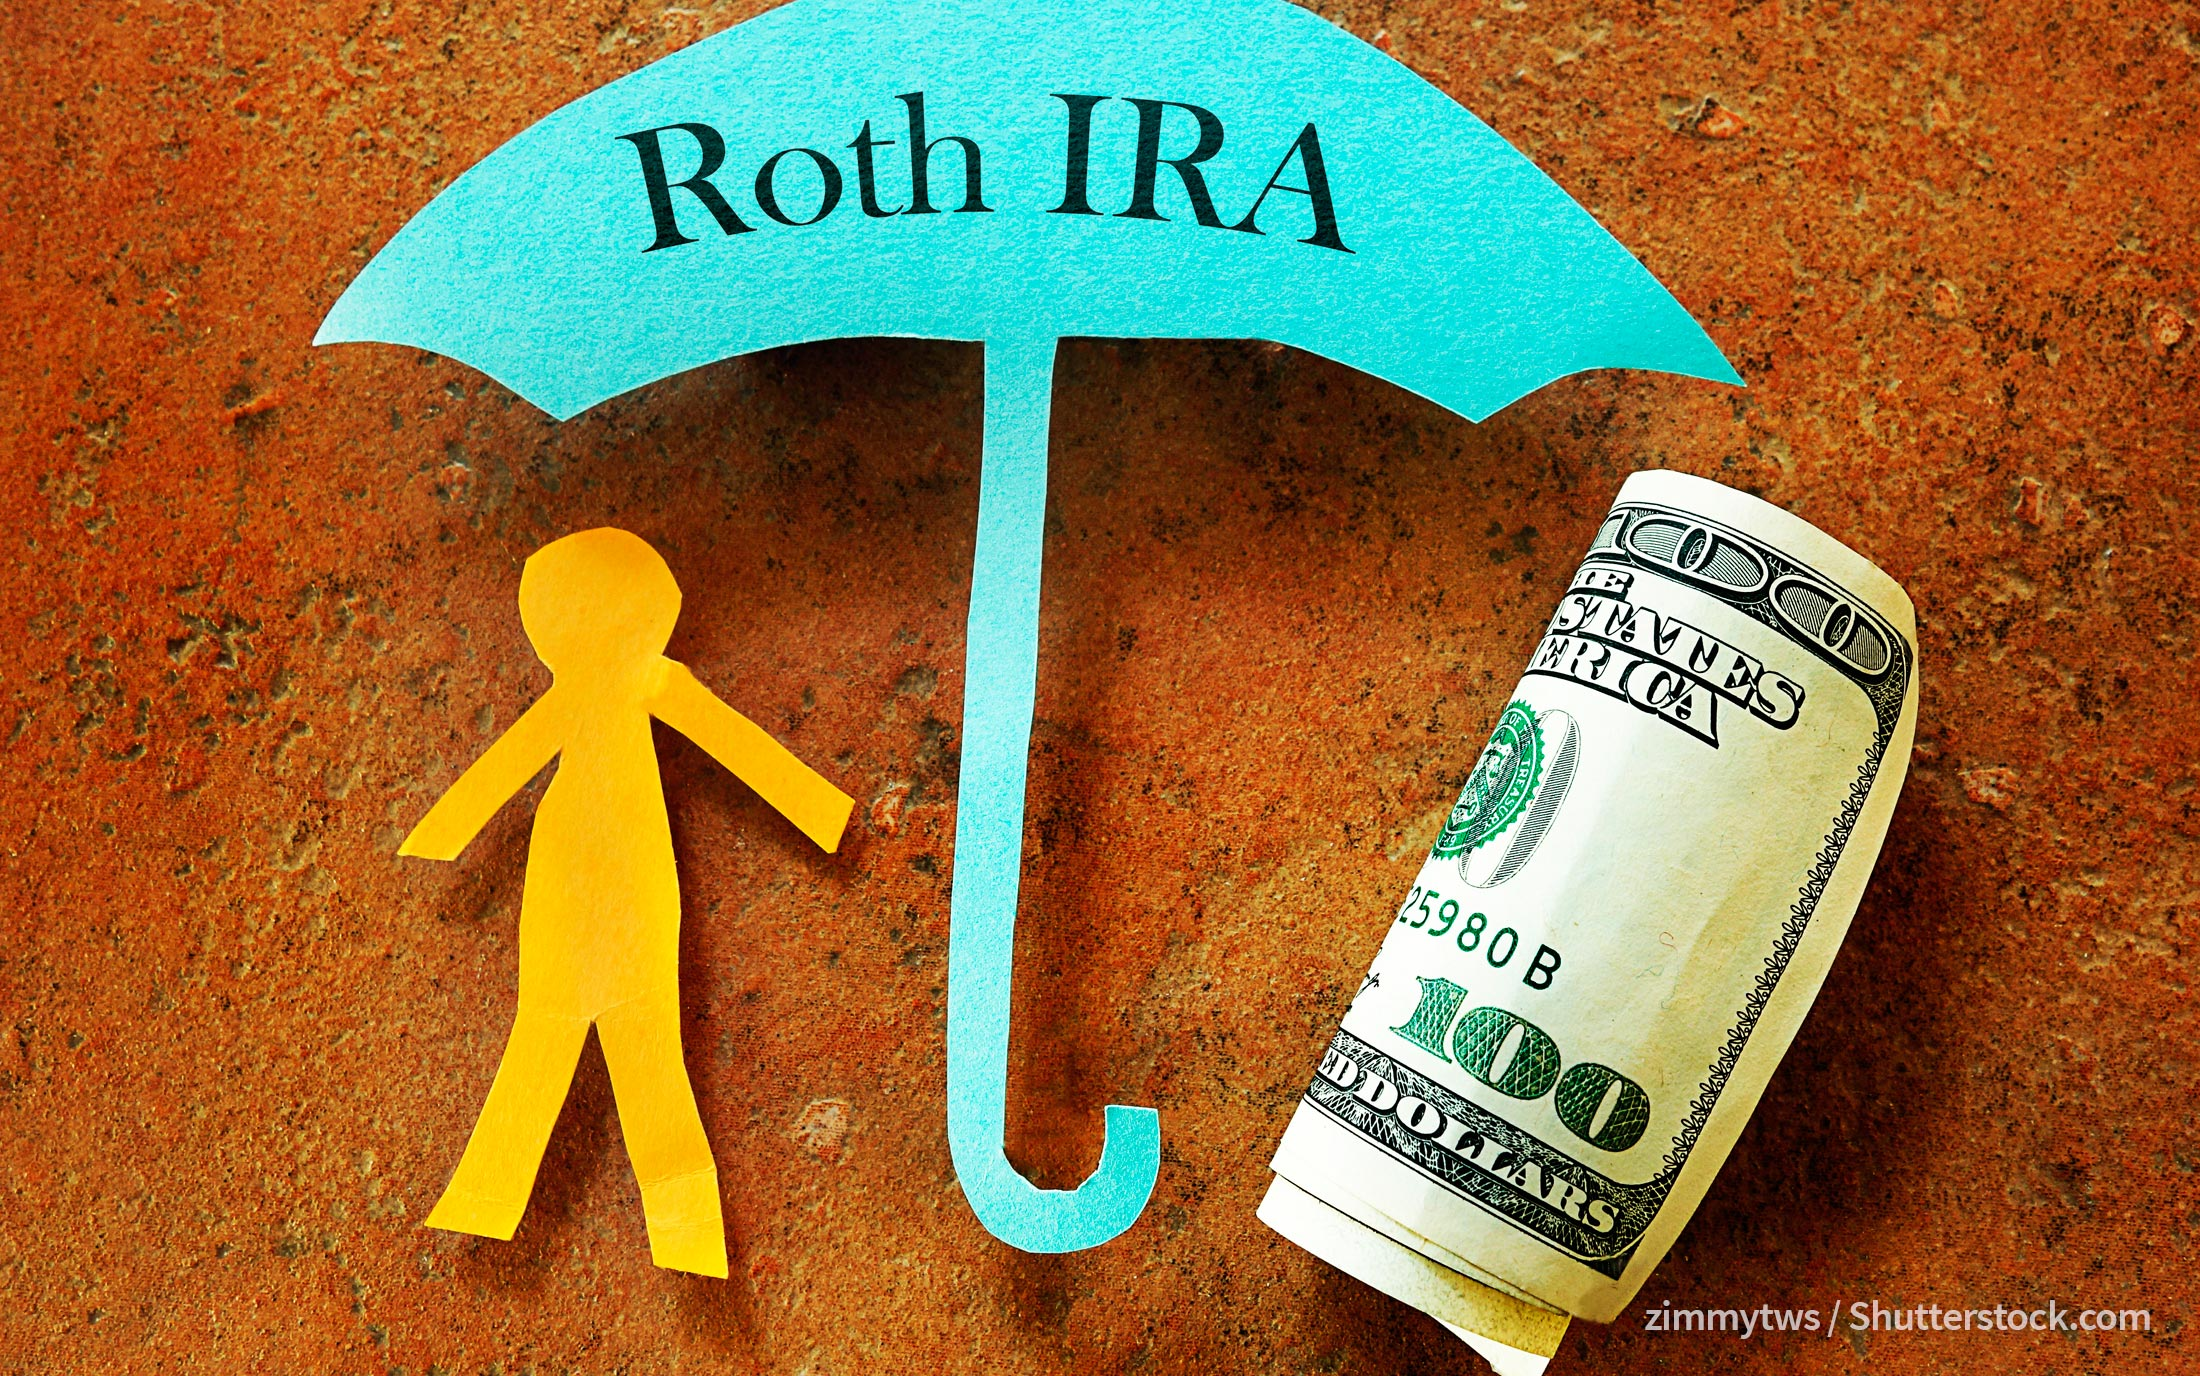 Best options for sep ira